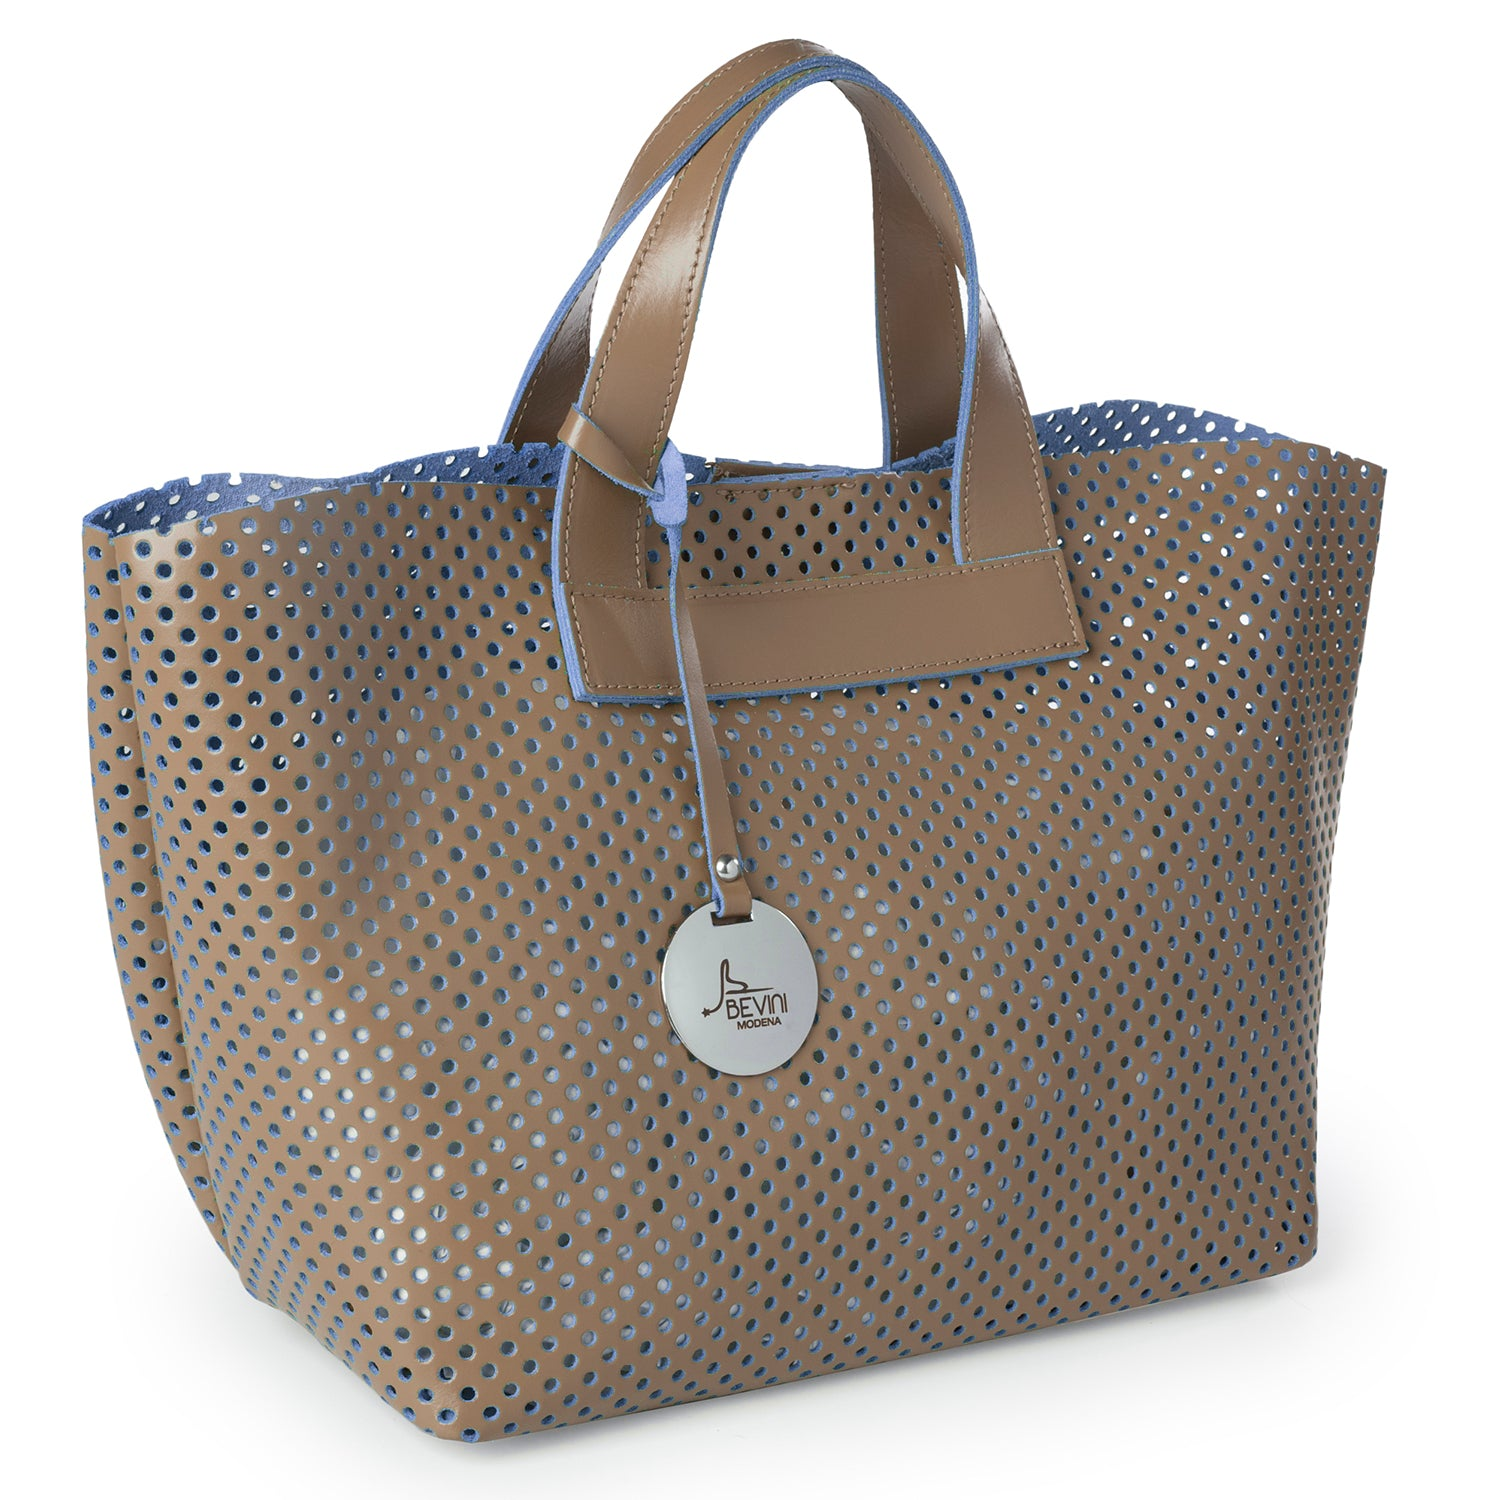 Soave Perforated Leather Small Tote Bag (Q10 PERF.)